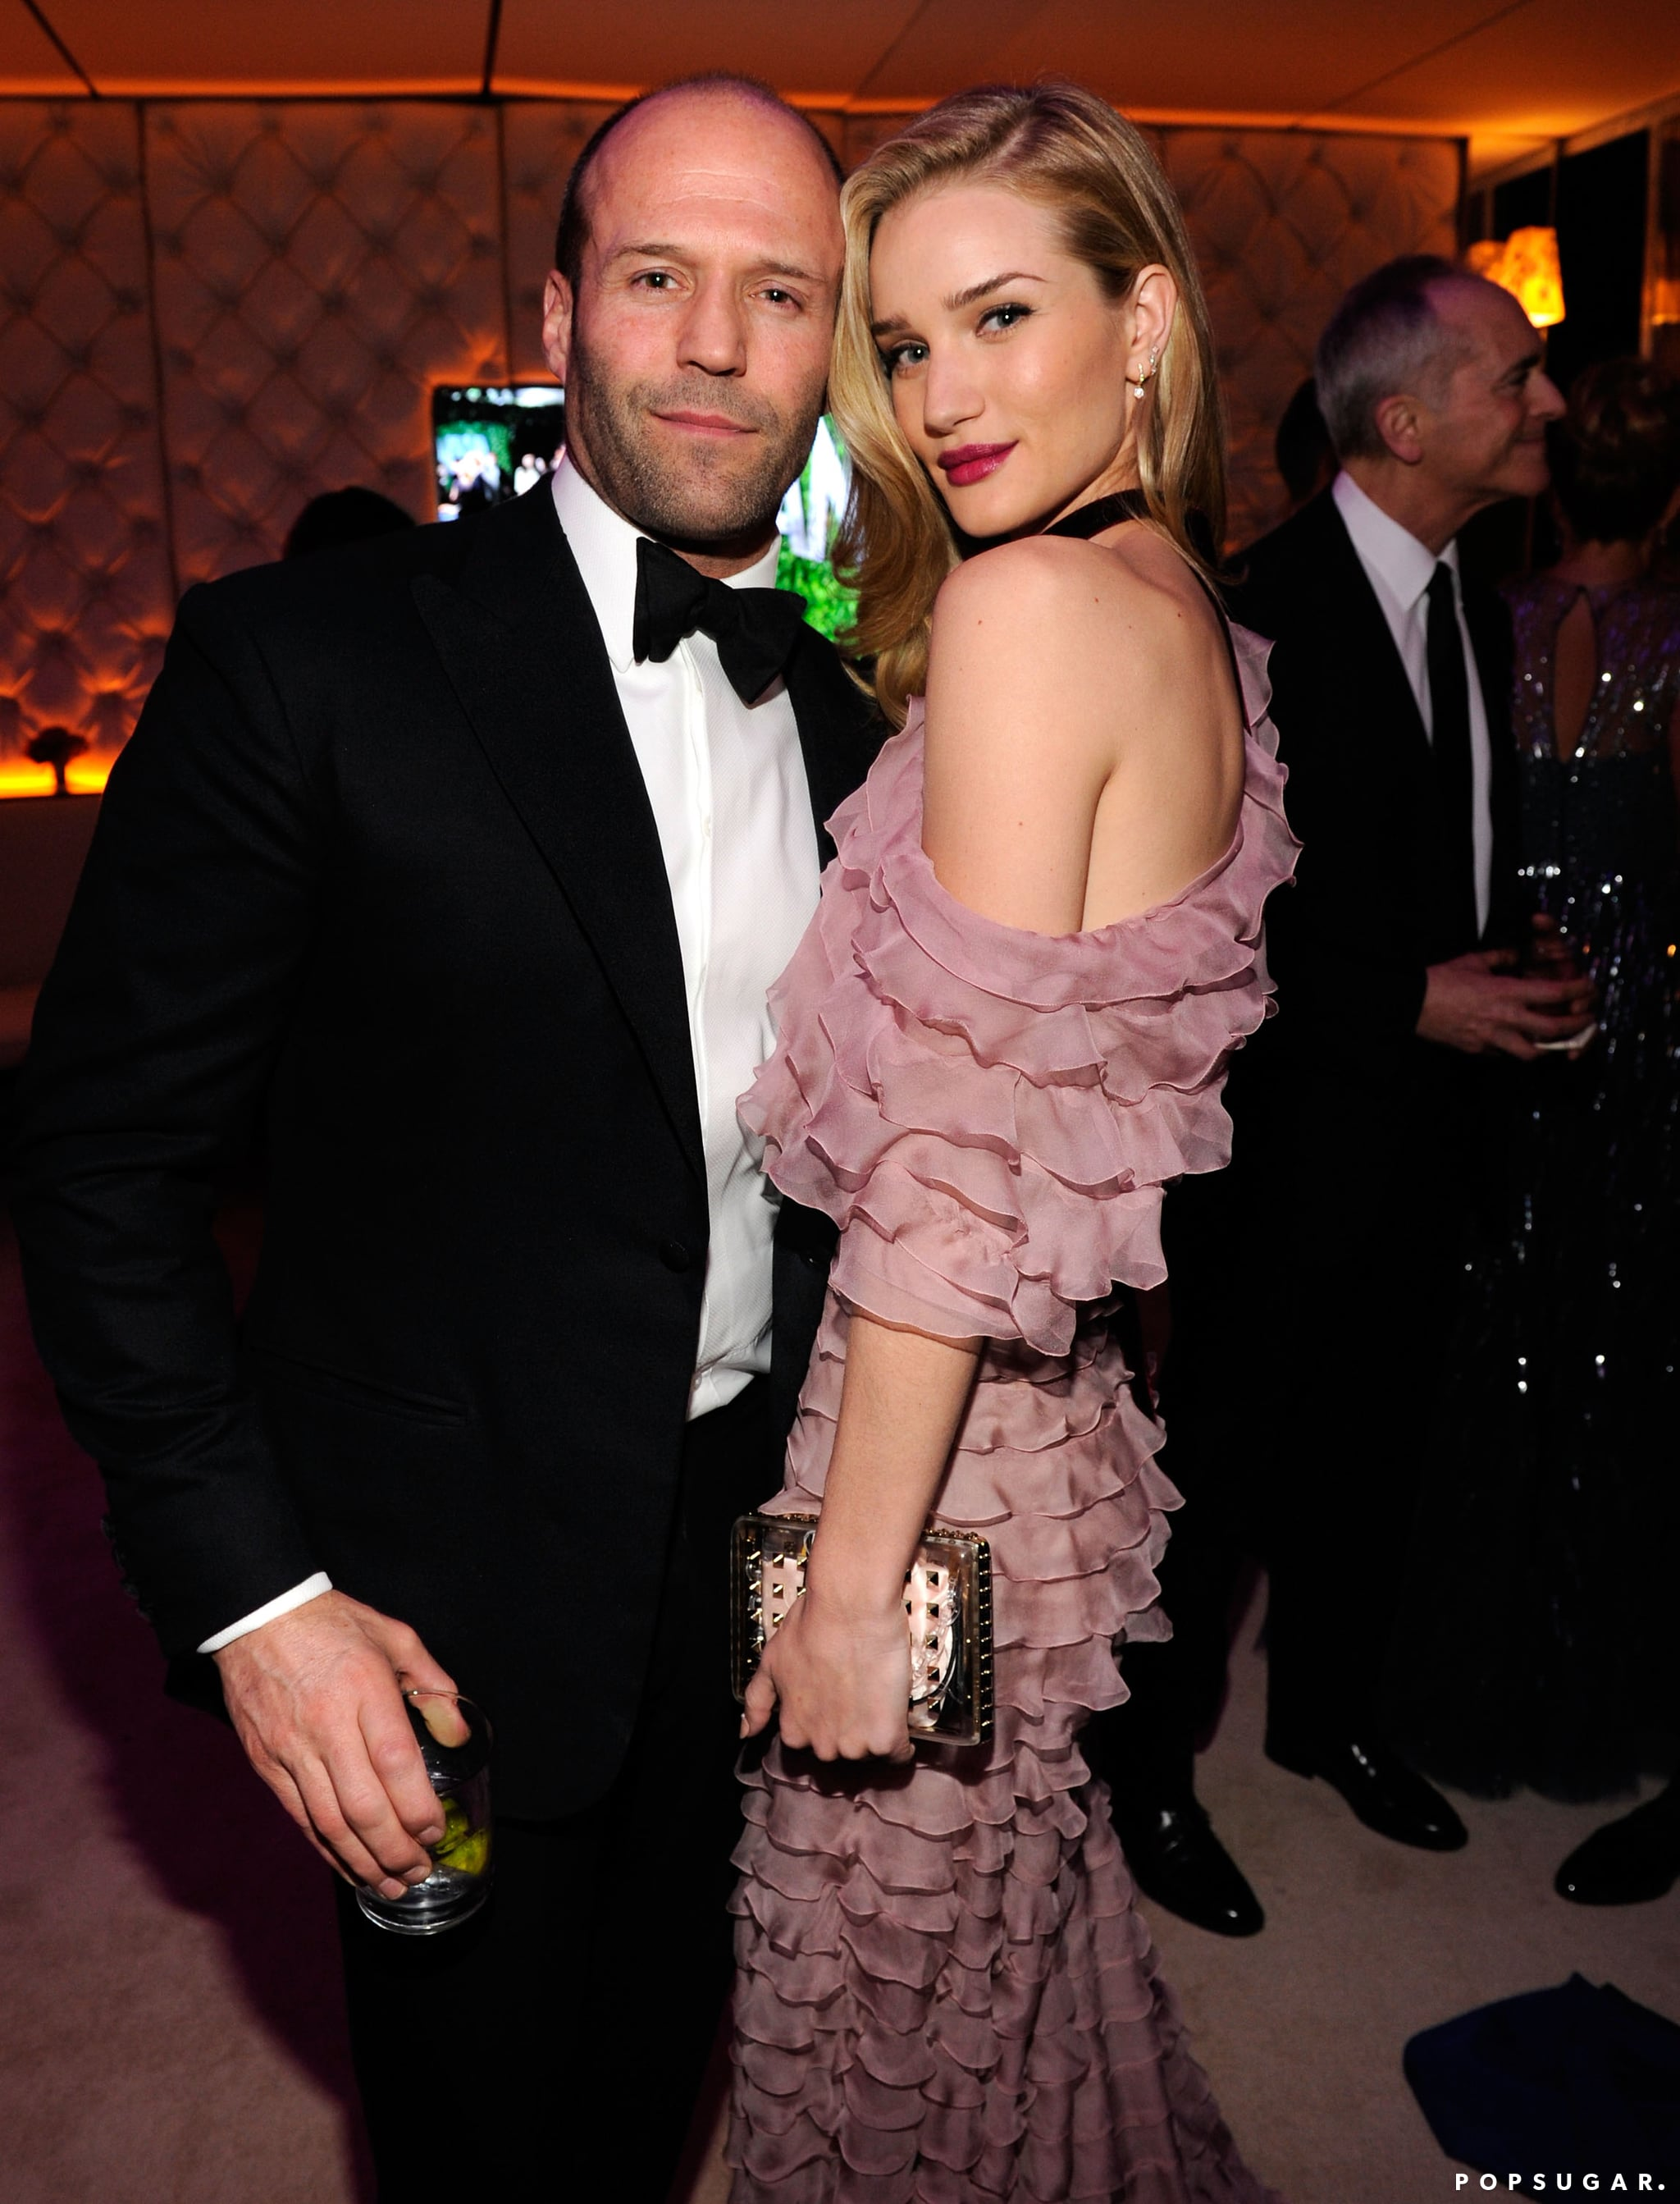 Jason Statham and Rosie Huntington-Whiteley posed for a picture inside the Vanity Fair Oscar party.